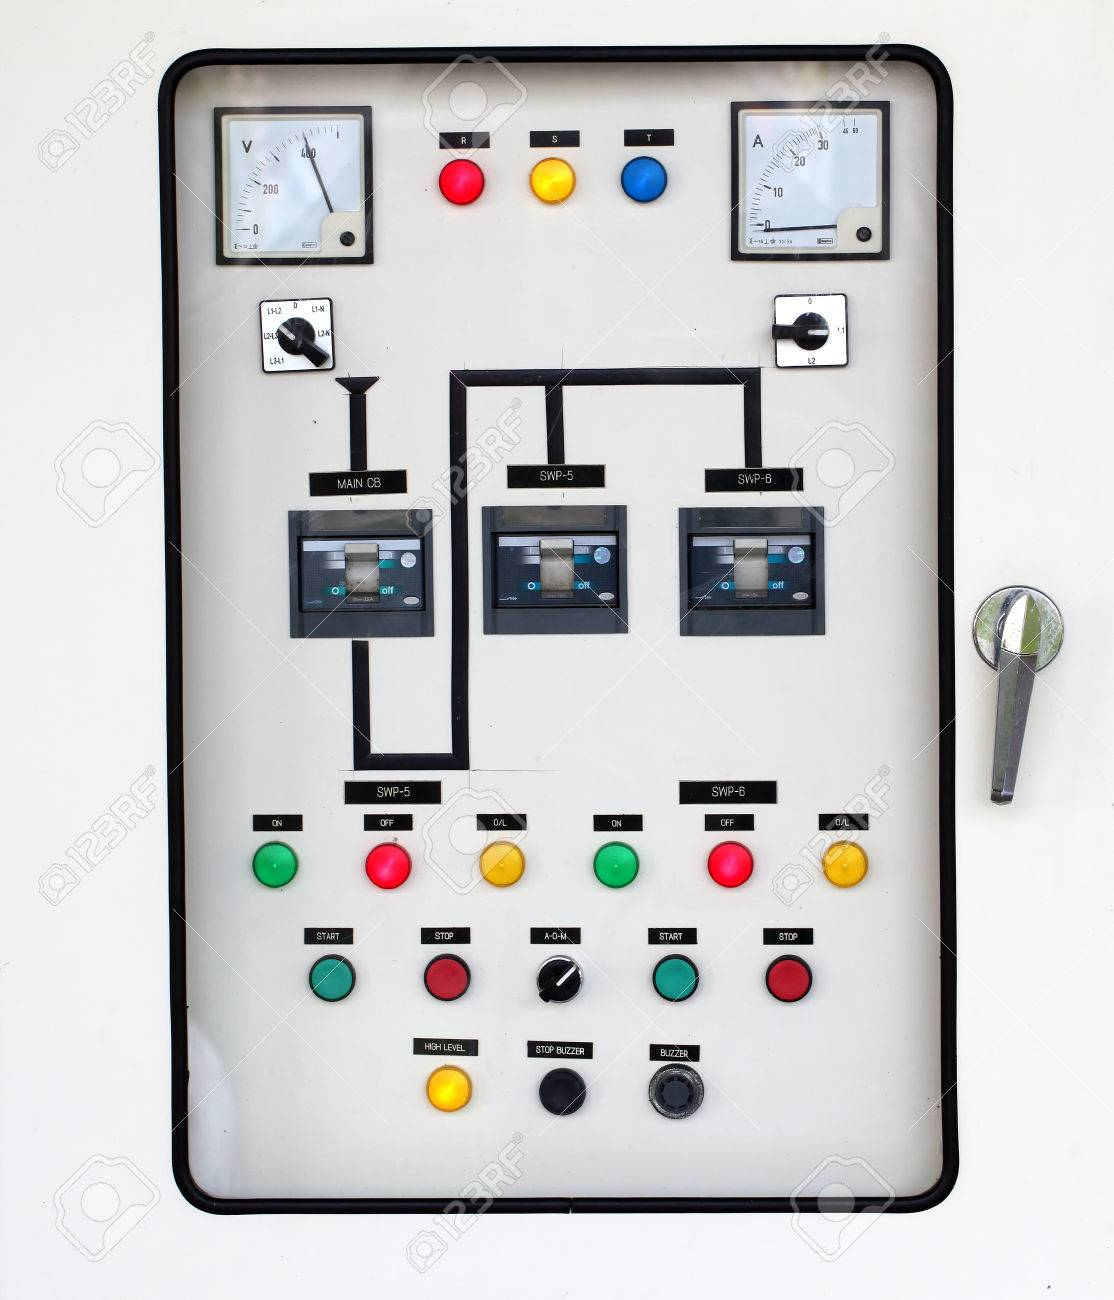 Electrical control panel board on electrical switches, fire panel board, electric board, electrical switch, electrical form board, flooring board, bathroom panel board, electrical power board,